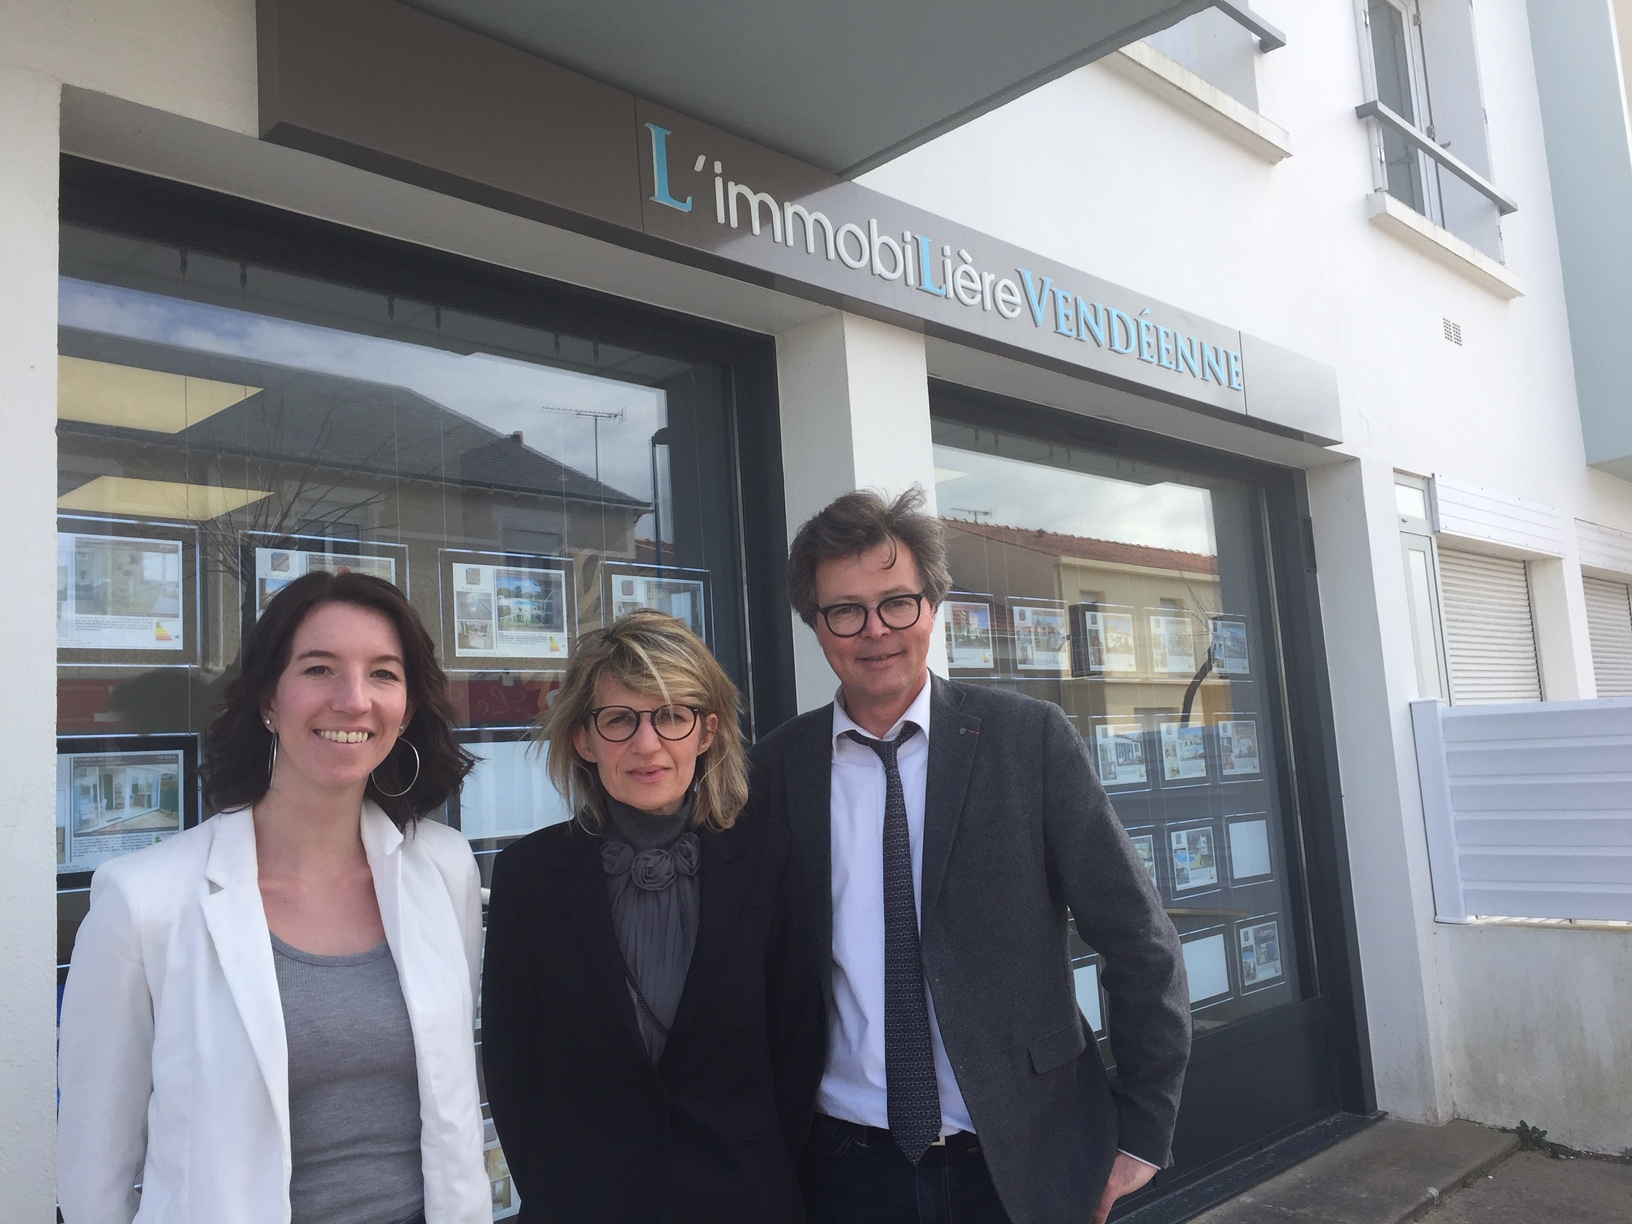 L IMMOBILIERE VENDEENNE